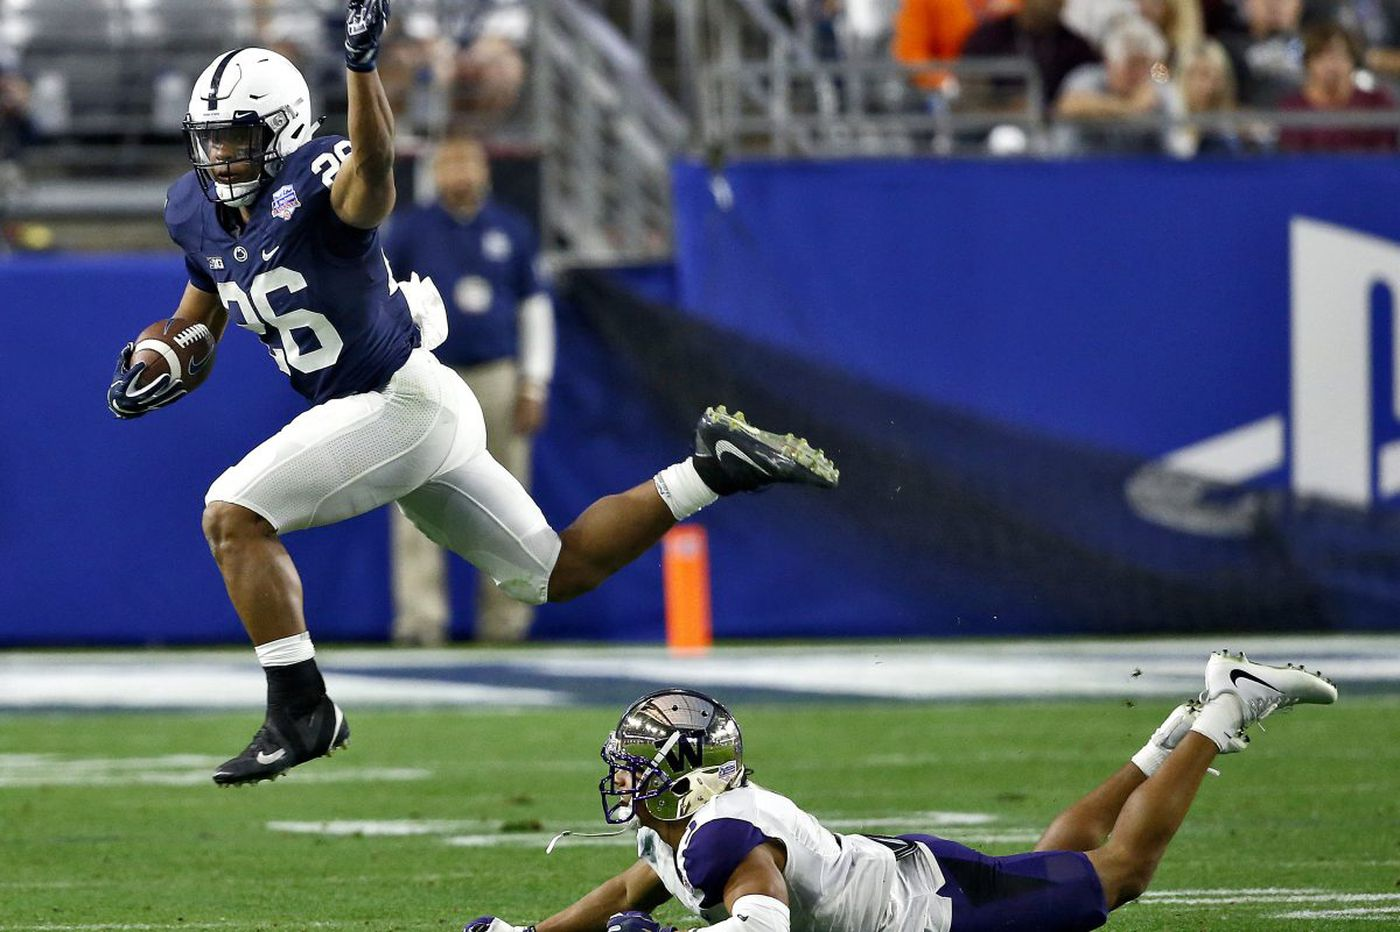 Penn State 35, Washington 28: Saquon Barkley, Trace McSorley lead Fiesta Bowl victory over Huskies